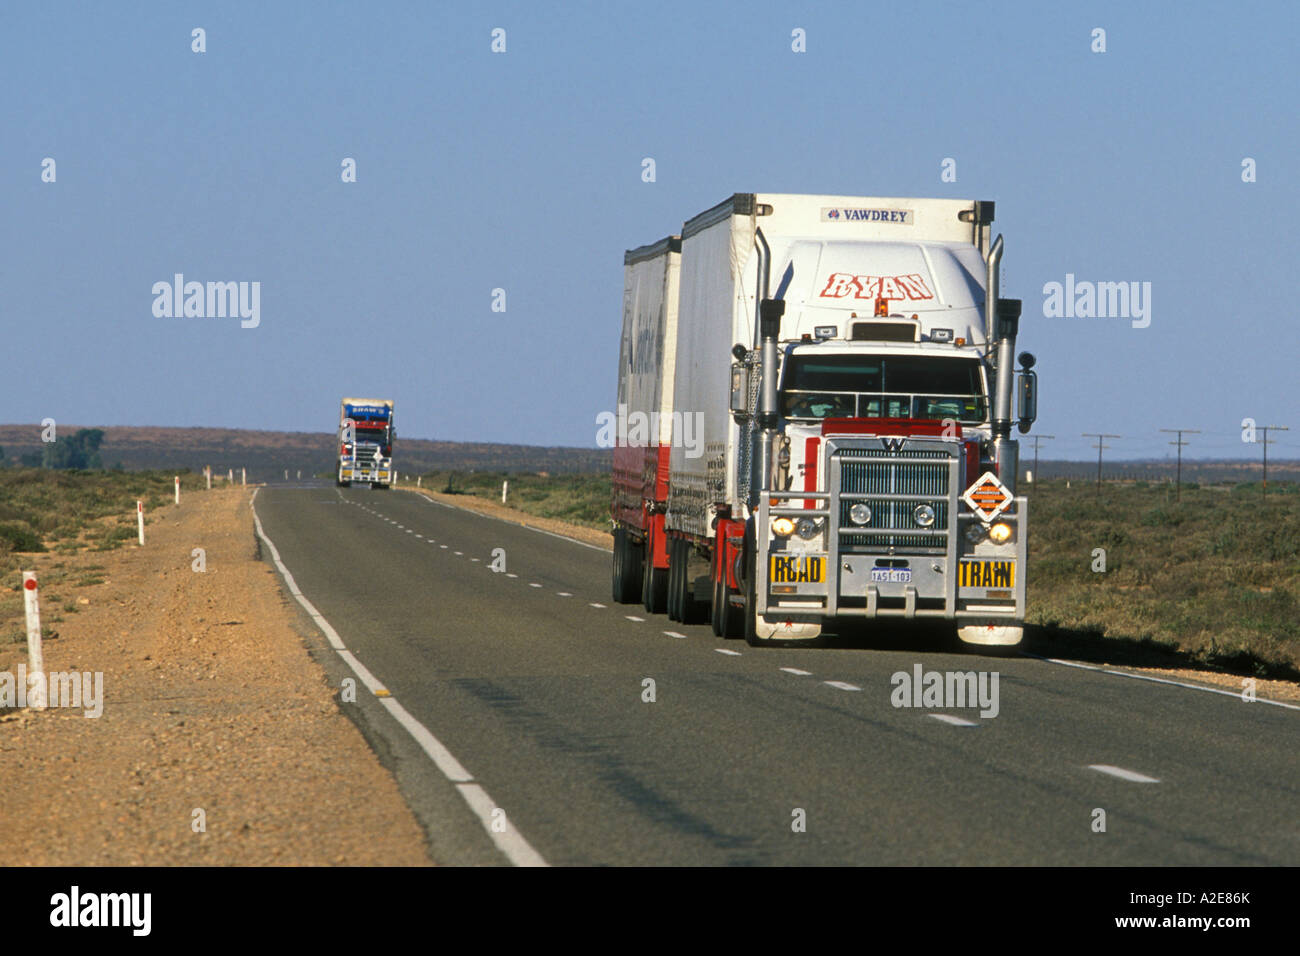 Road train on the on the remote and sparsely populated Barrier Highway in South Australia - Stock Image